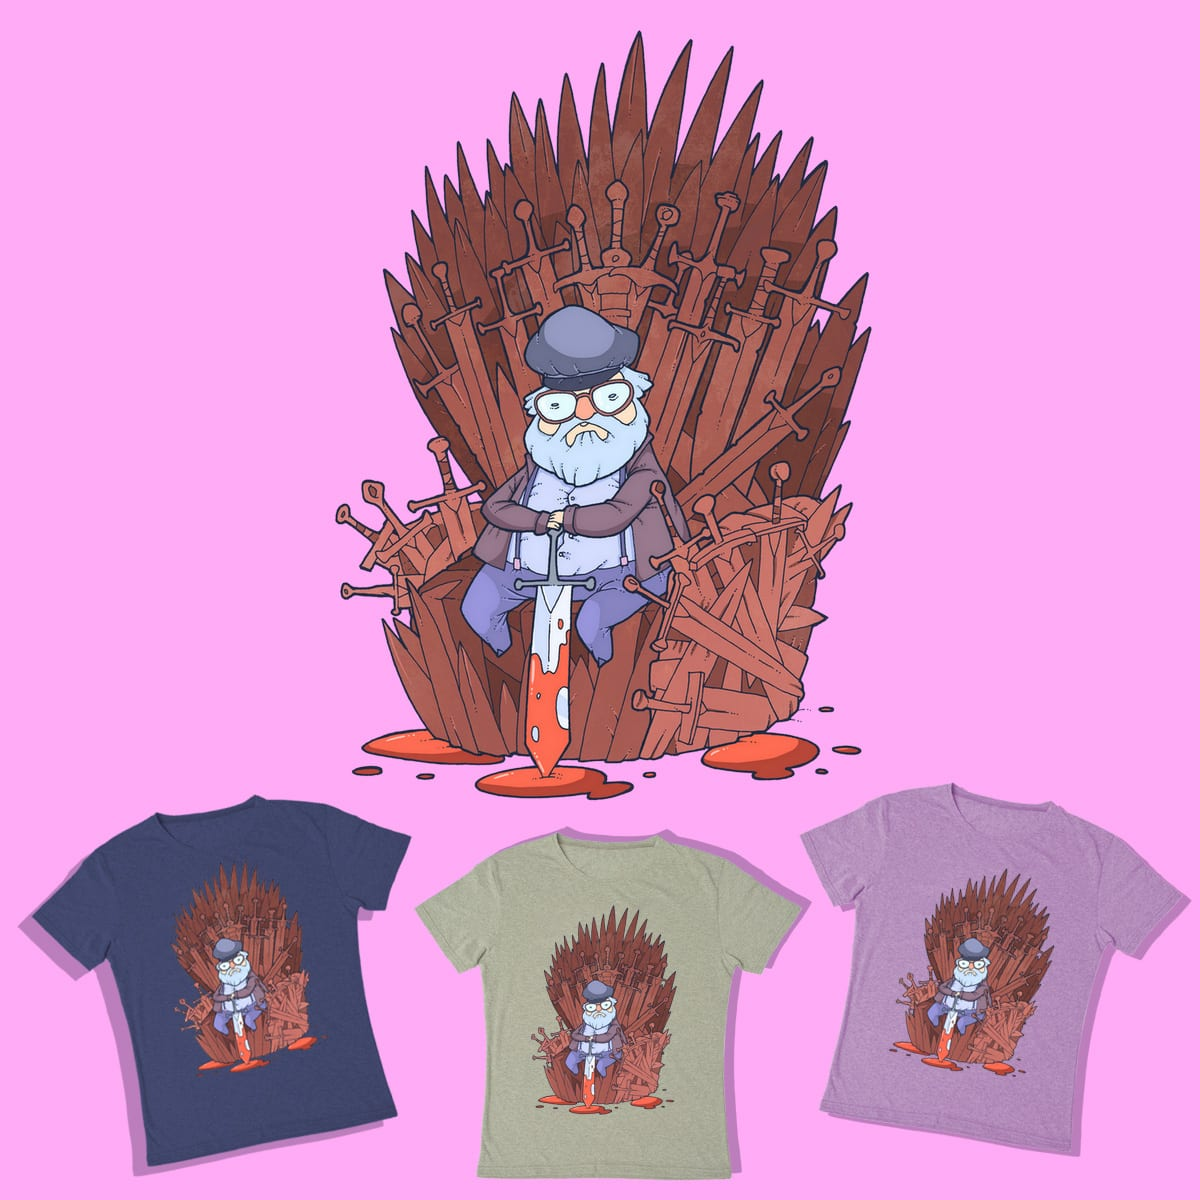 George R. R. Martin by lost-angel-less on Threadless